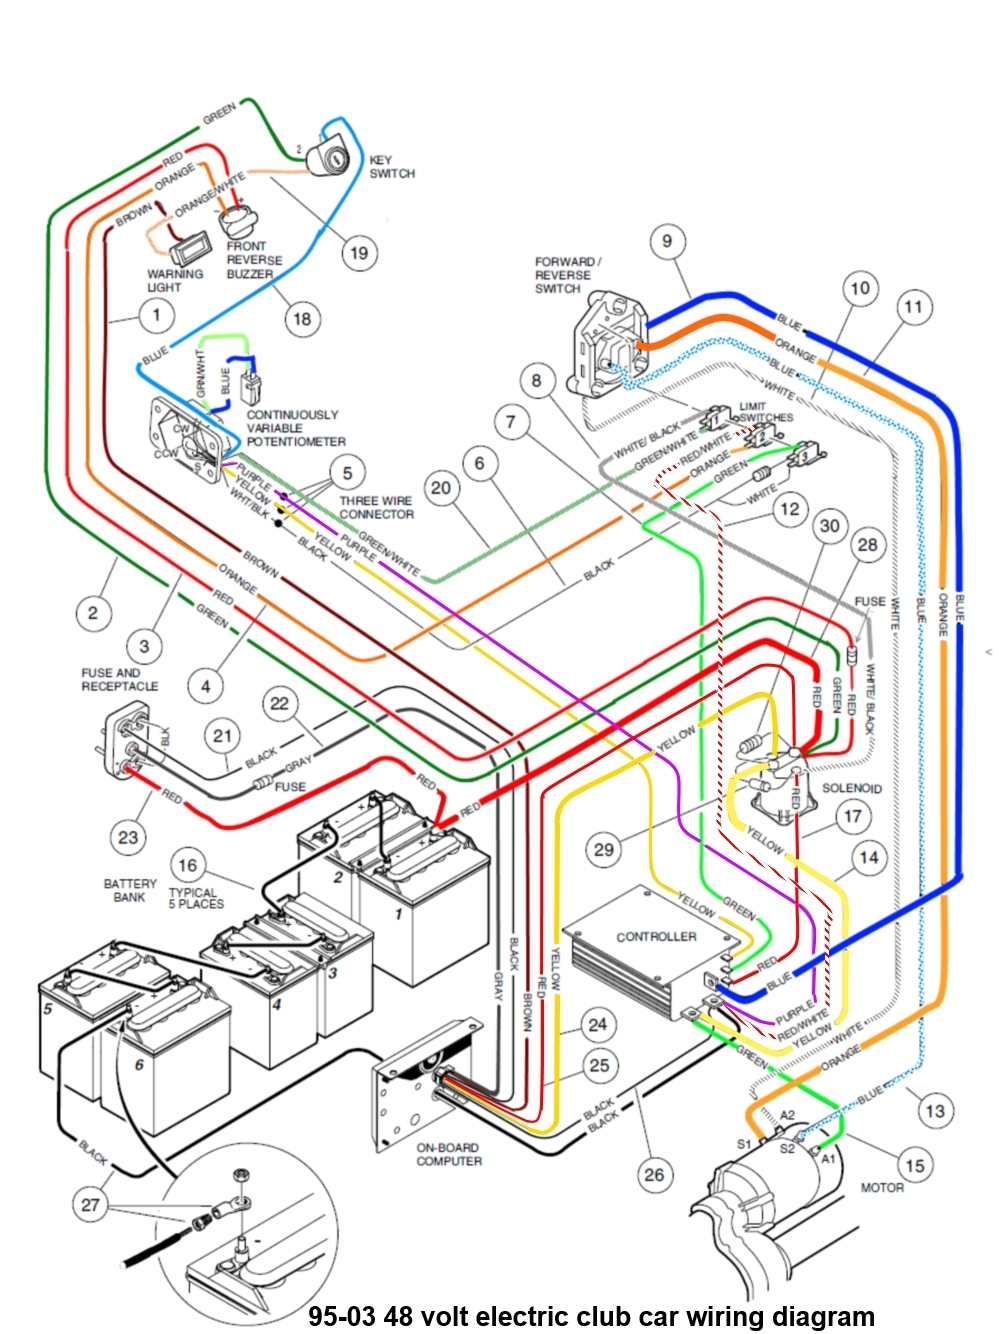 ingersoll rand club car wiring diagram and wiring diagram for 1999 pertaining to club car golf cart parts diagram ingersoll rand club car wiring diagram ingersoll rand club car wiring diagram at letsshop.co